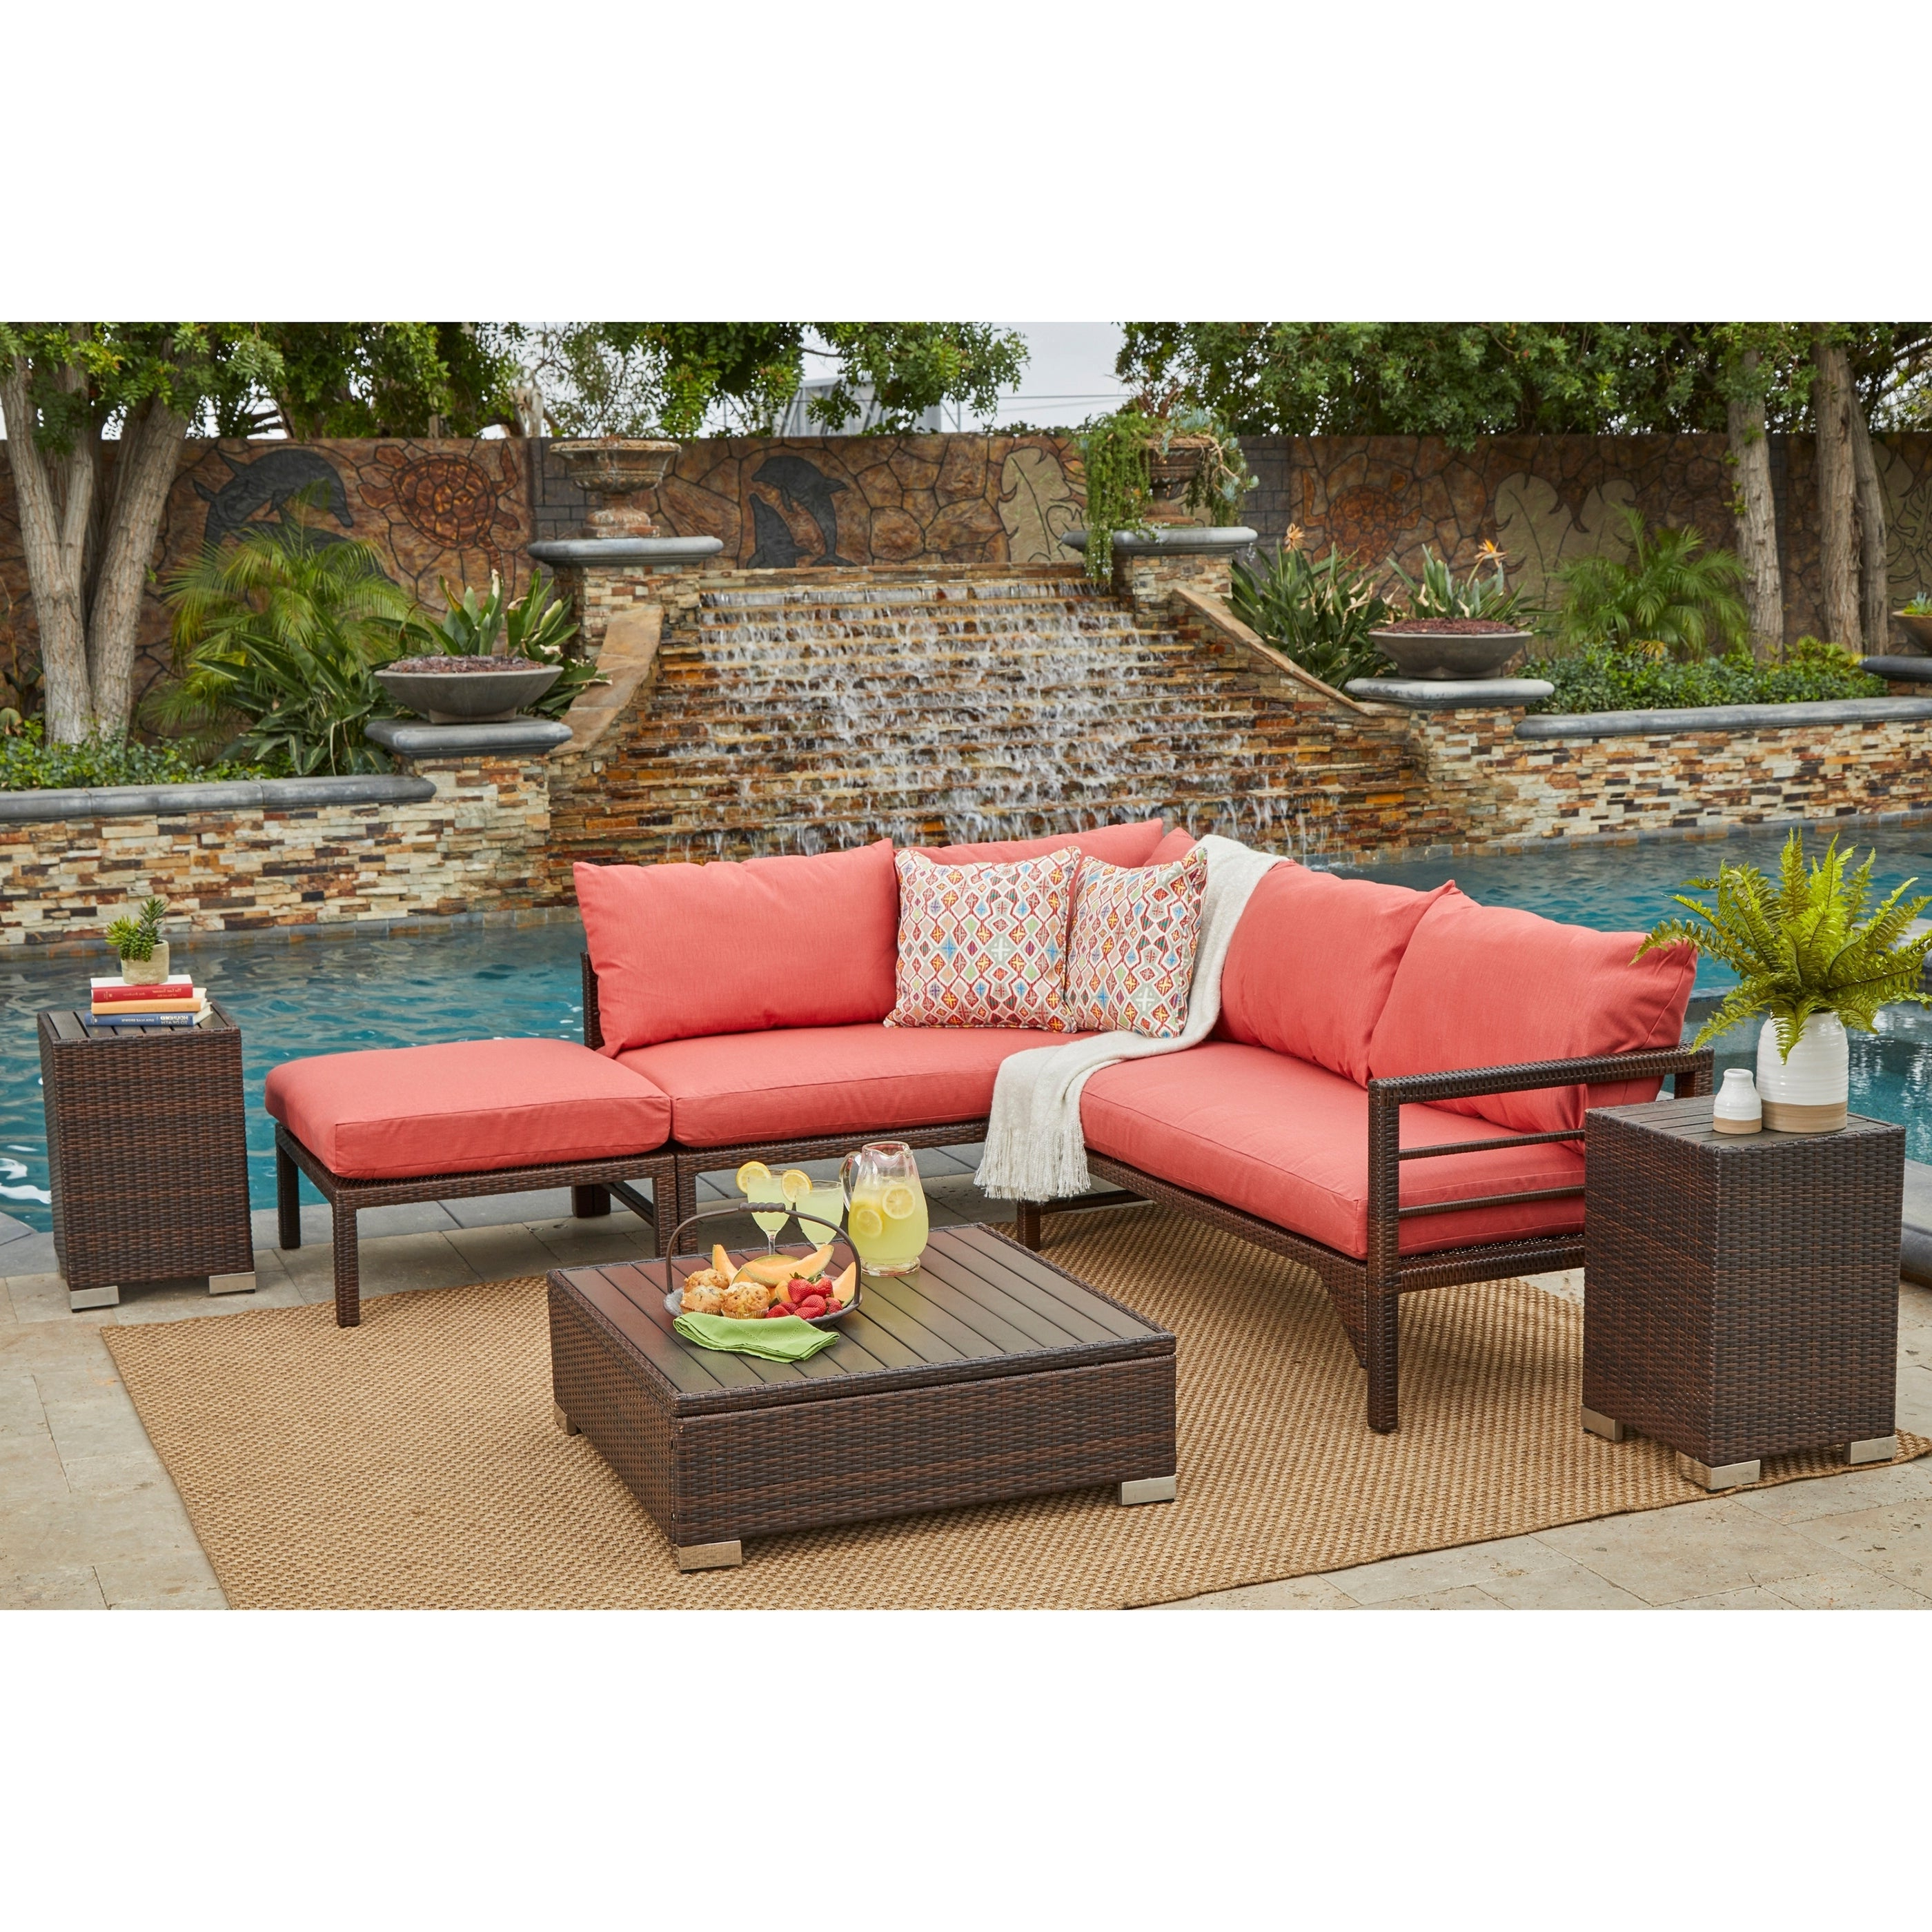 Newest Madison Avenue Patio Sectionals With Sunbrella Cushions With Havenside Home Stillwater Brown Indoor/outdoor Sectional Seating Group With  Coral Cushions (View 16 of 20)